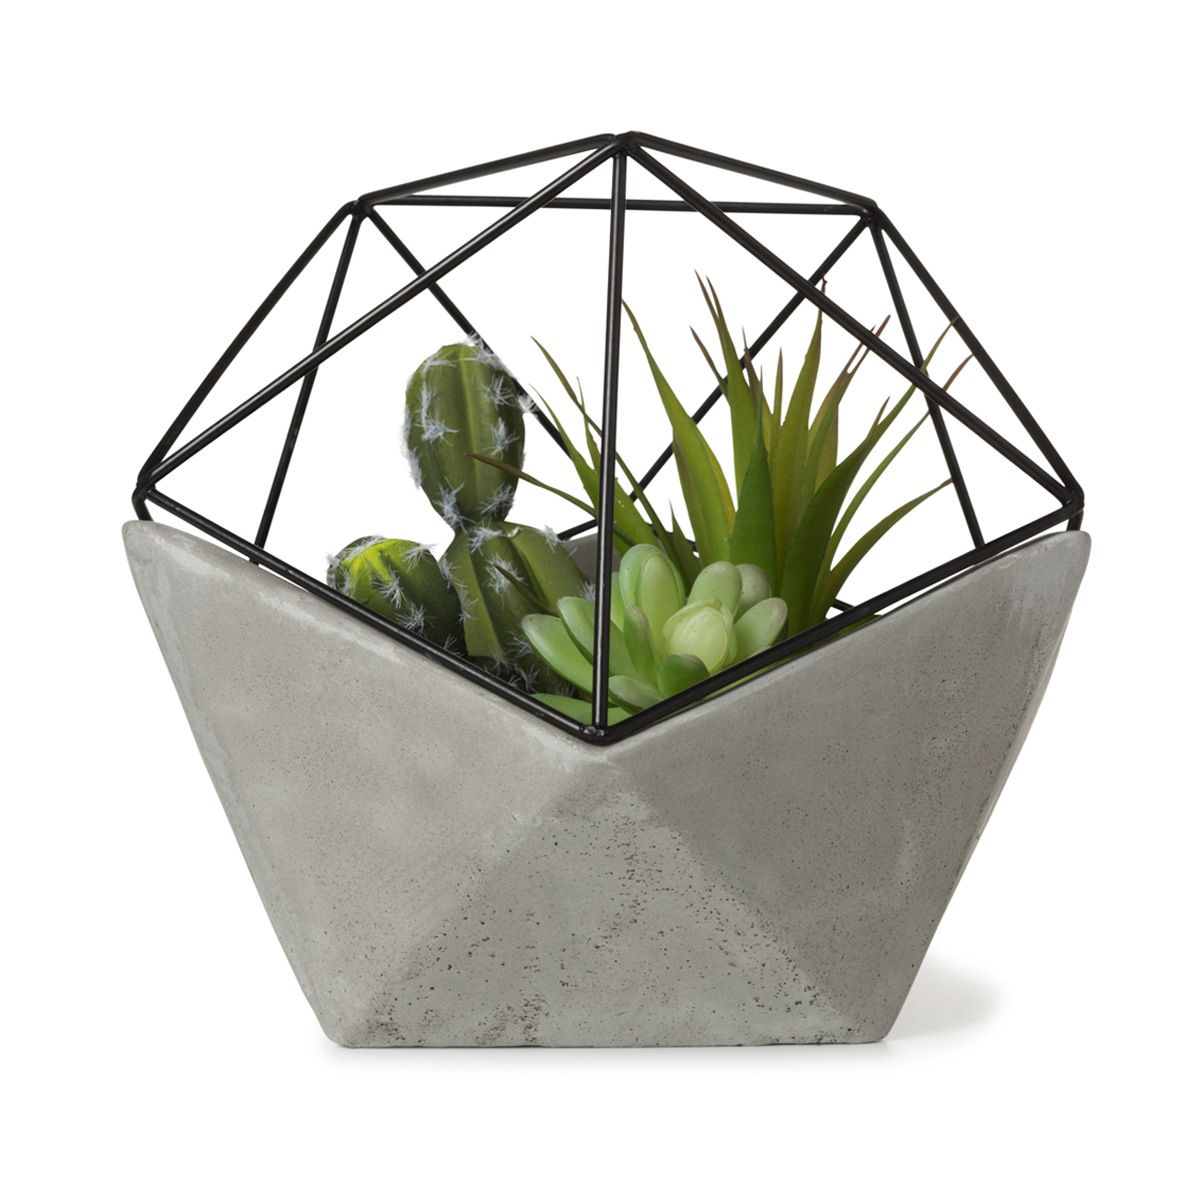 Geo Wire Terrarium | Kmart | Living | Pinterest | Terraria, Geo and ...